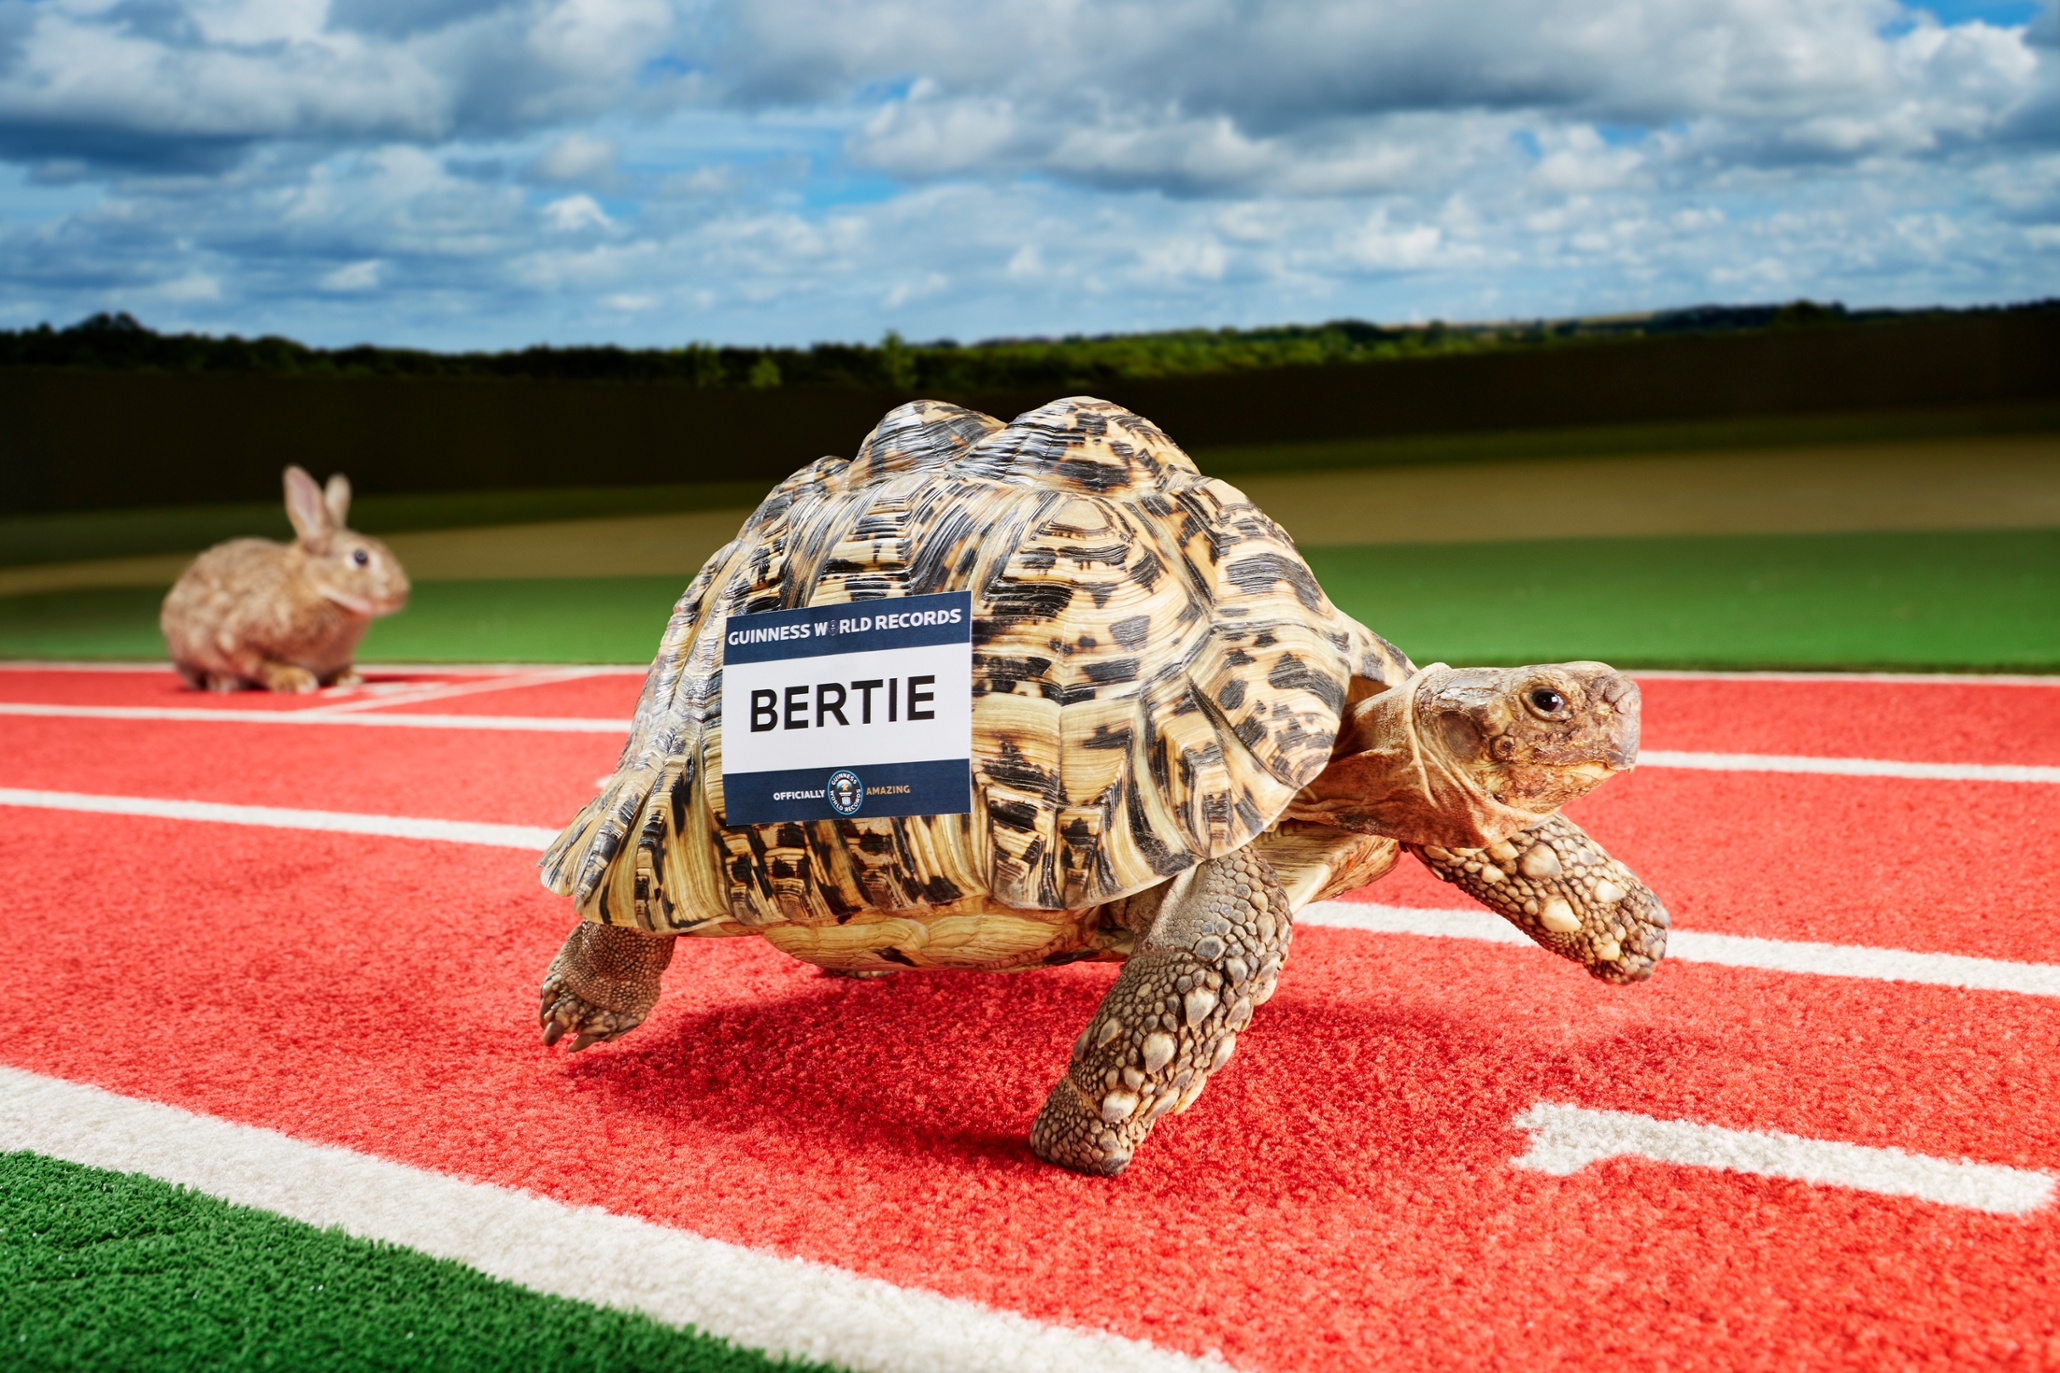 Bertie - Fastest Tortoise Guinness World Records 2015 Photo Credit: Paul Michael Hughes/Guinness World Records